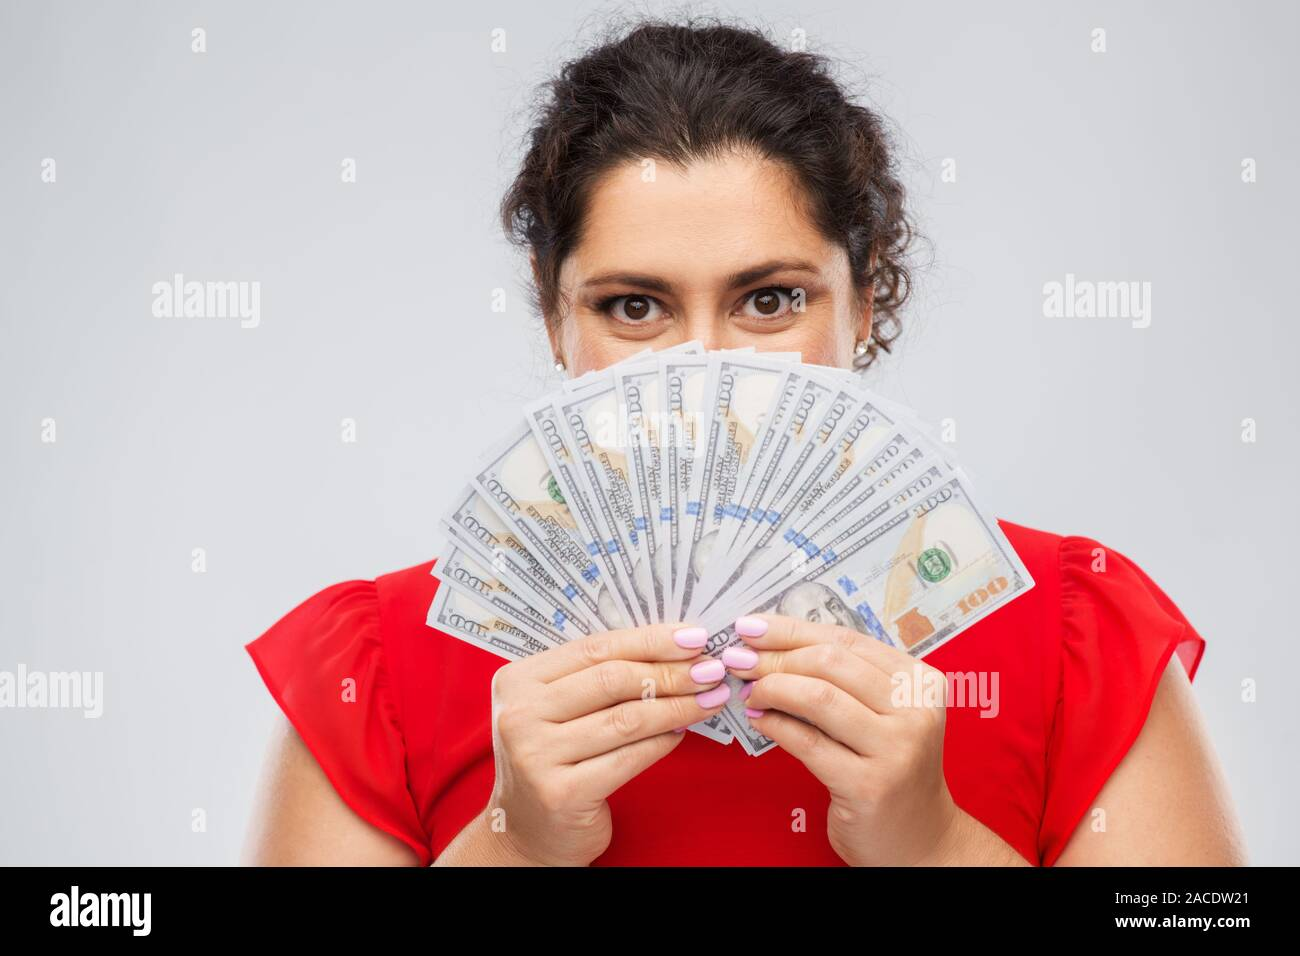 woman hiding her face behind money banknotes Stock Photo